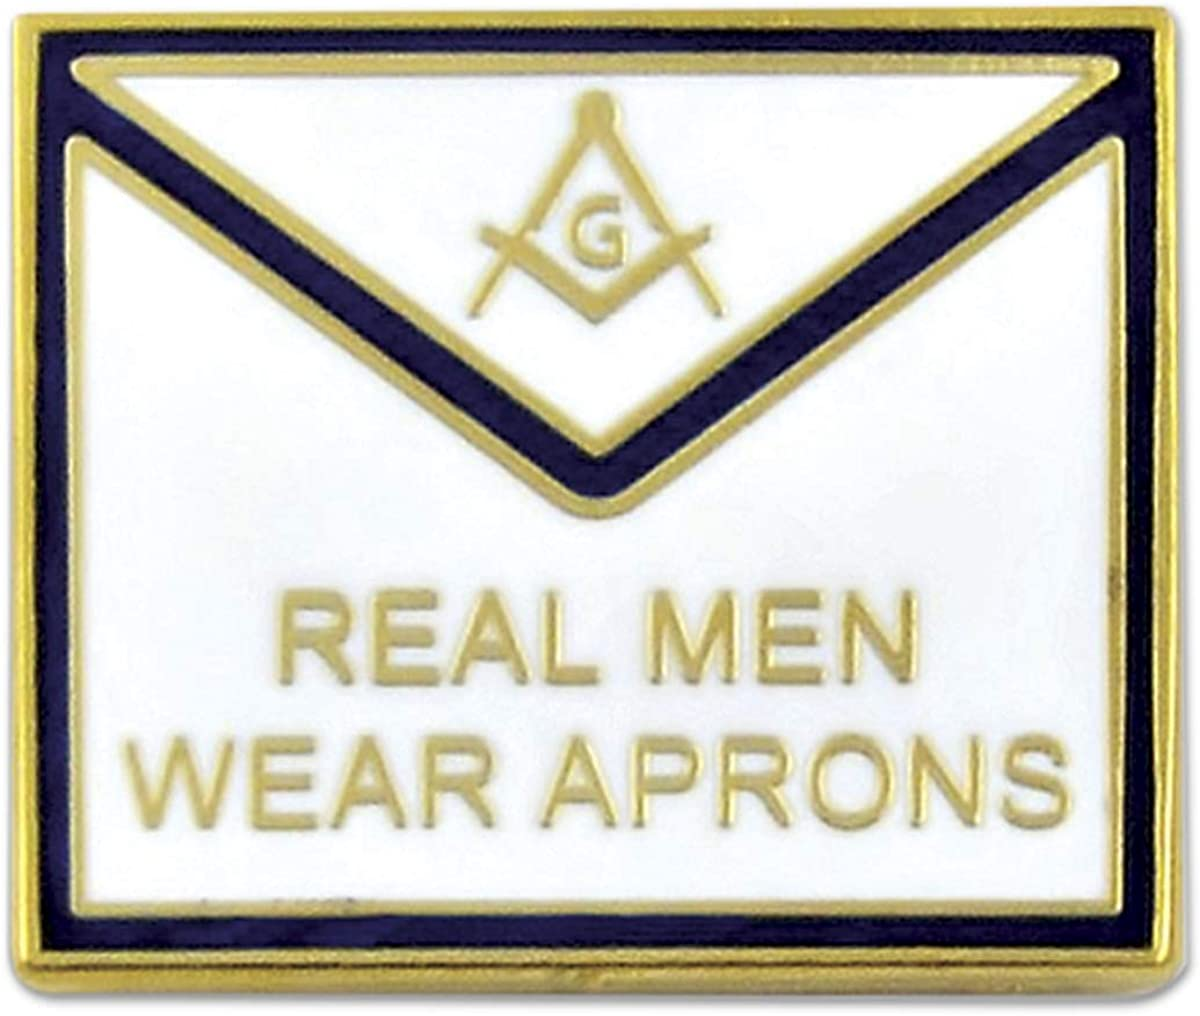 Real Men Wear Aprons Blue /& White Masonic Lapel Pin 3//4 Wide